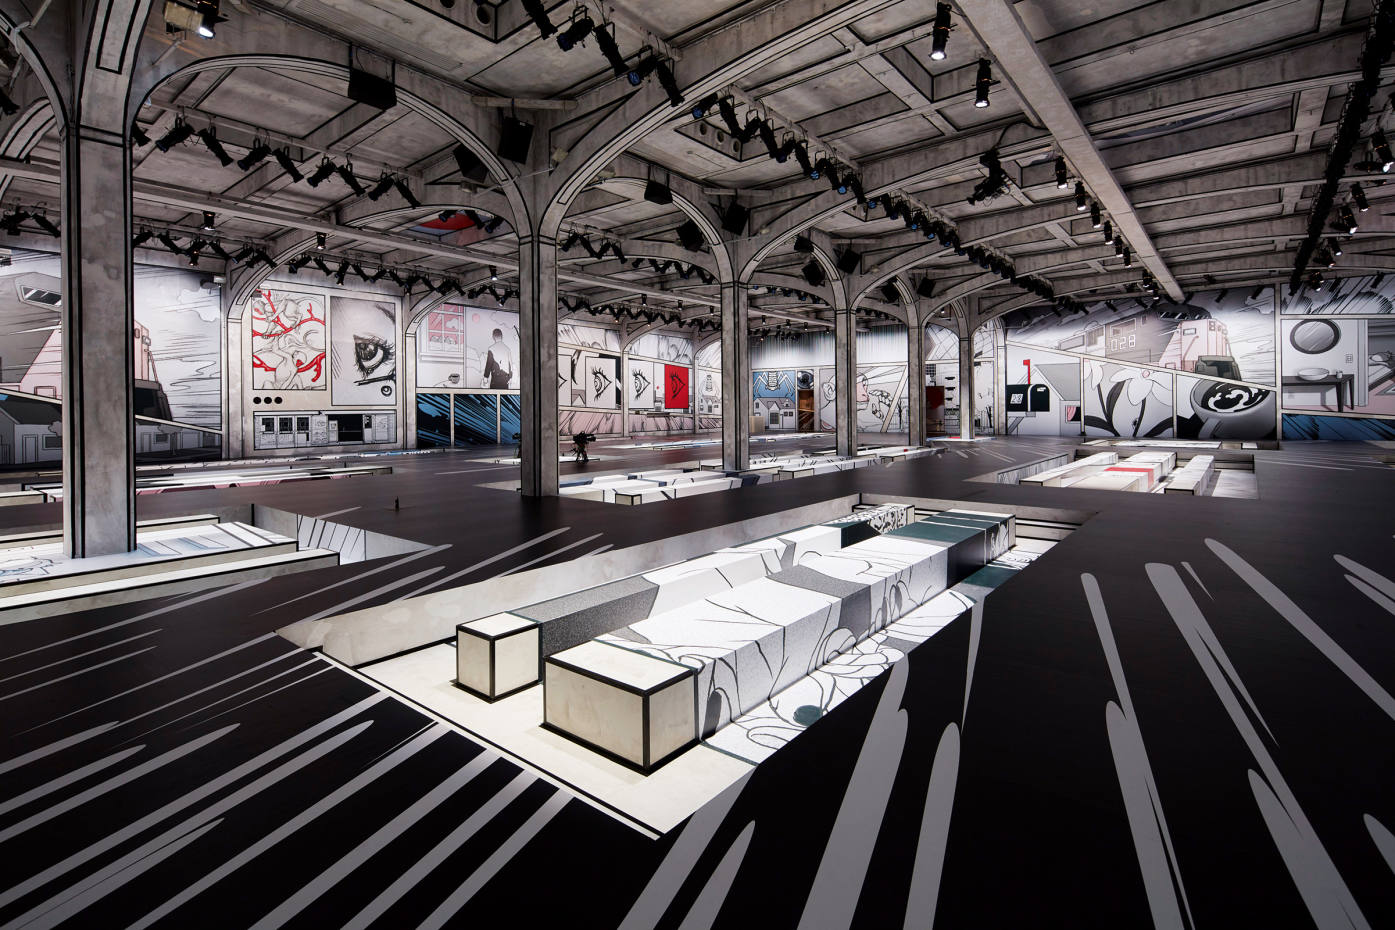 Prada's Milan headquarters was decorated with comic-strip-style panelling for a recent runway show